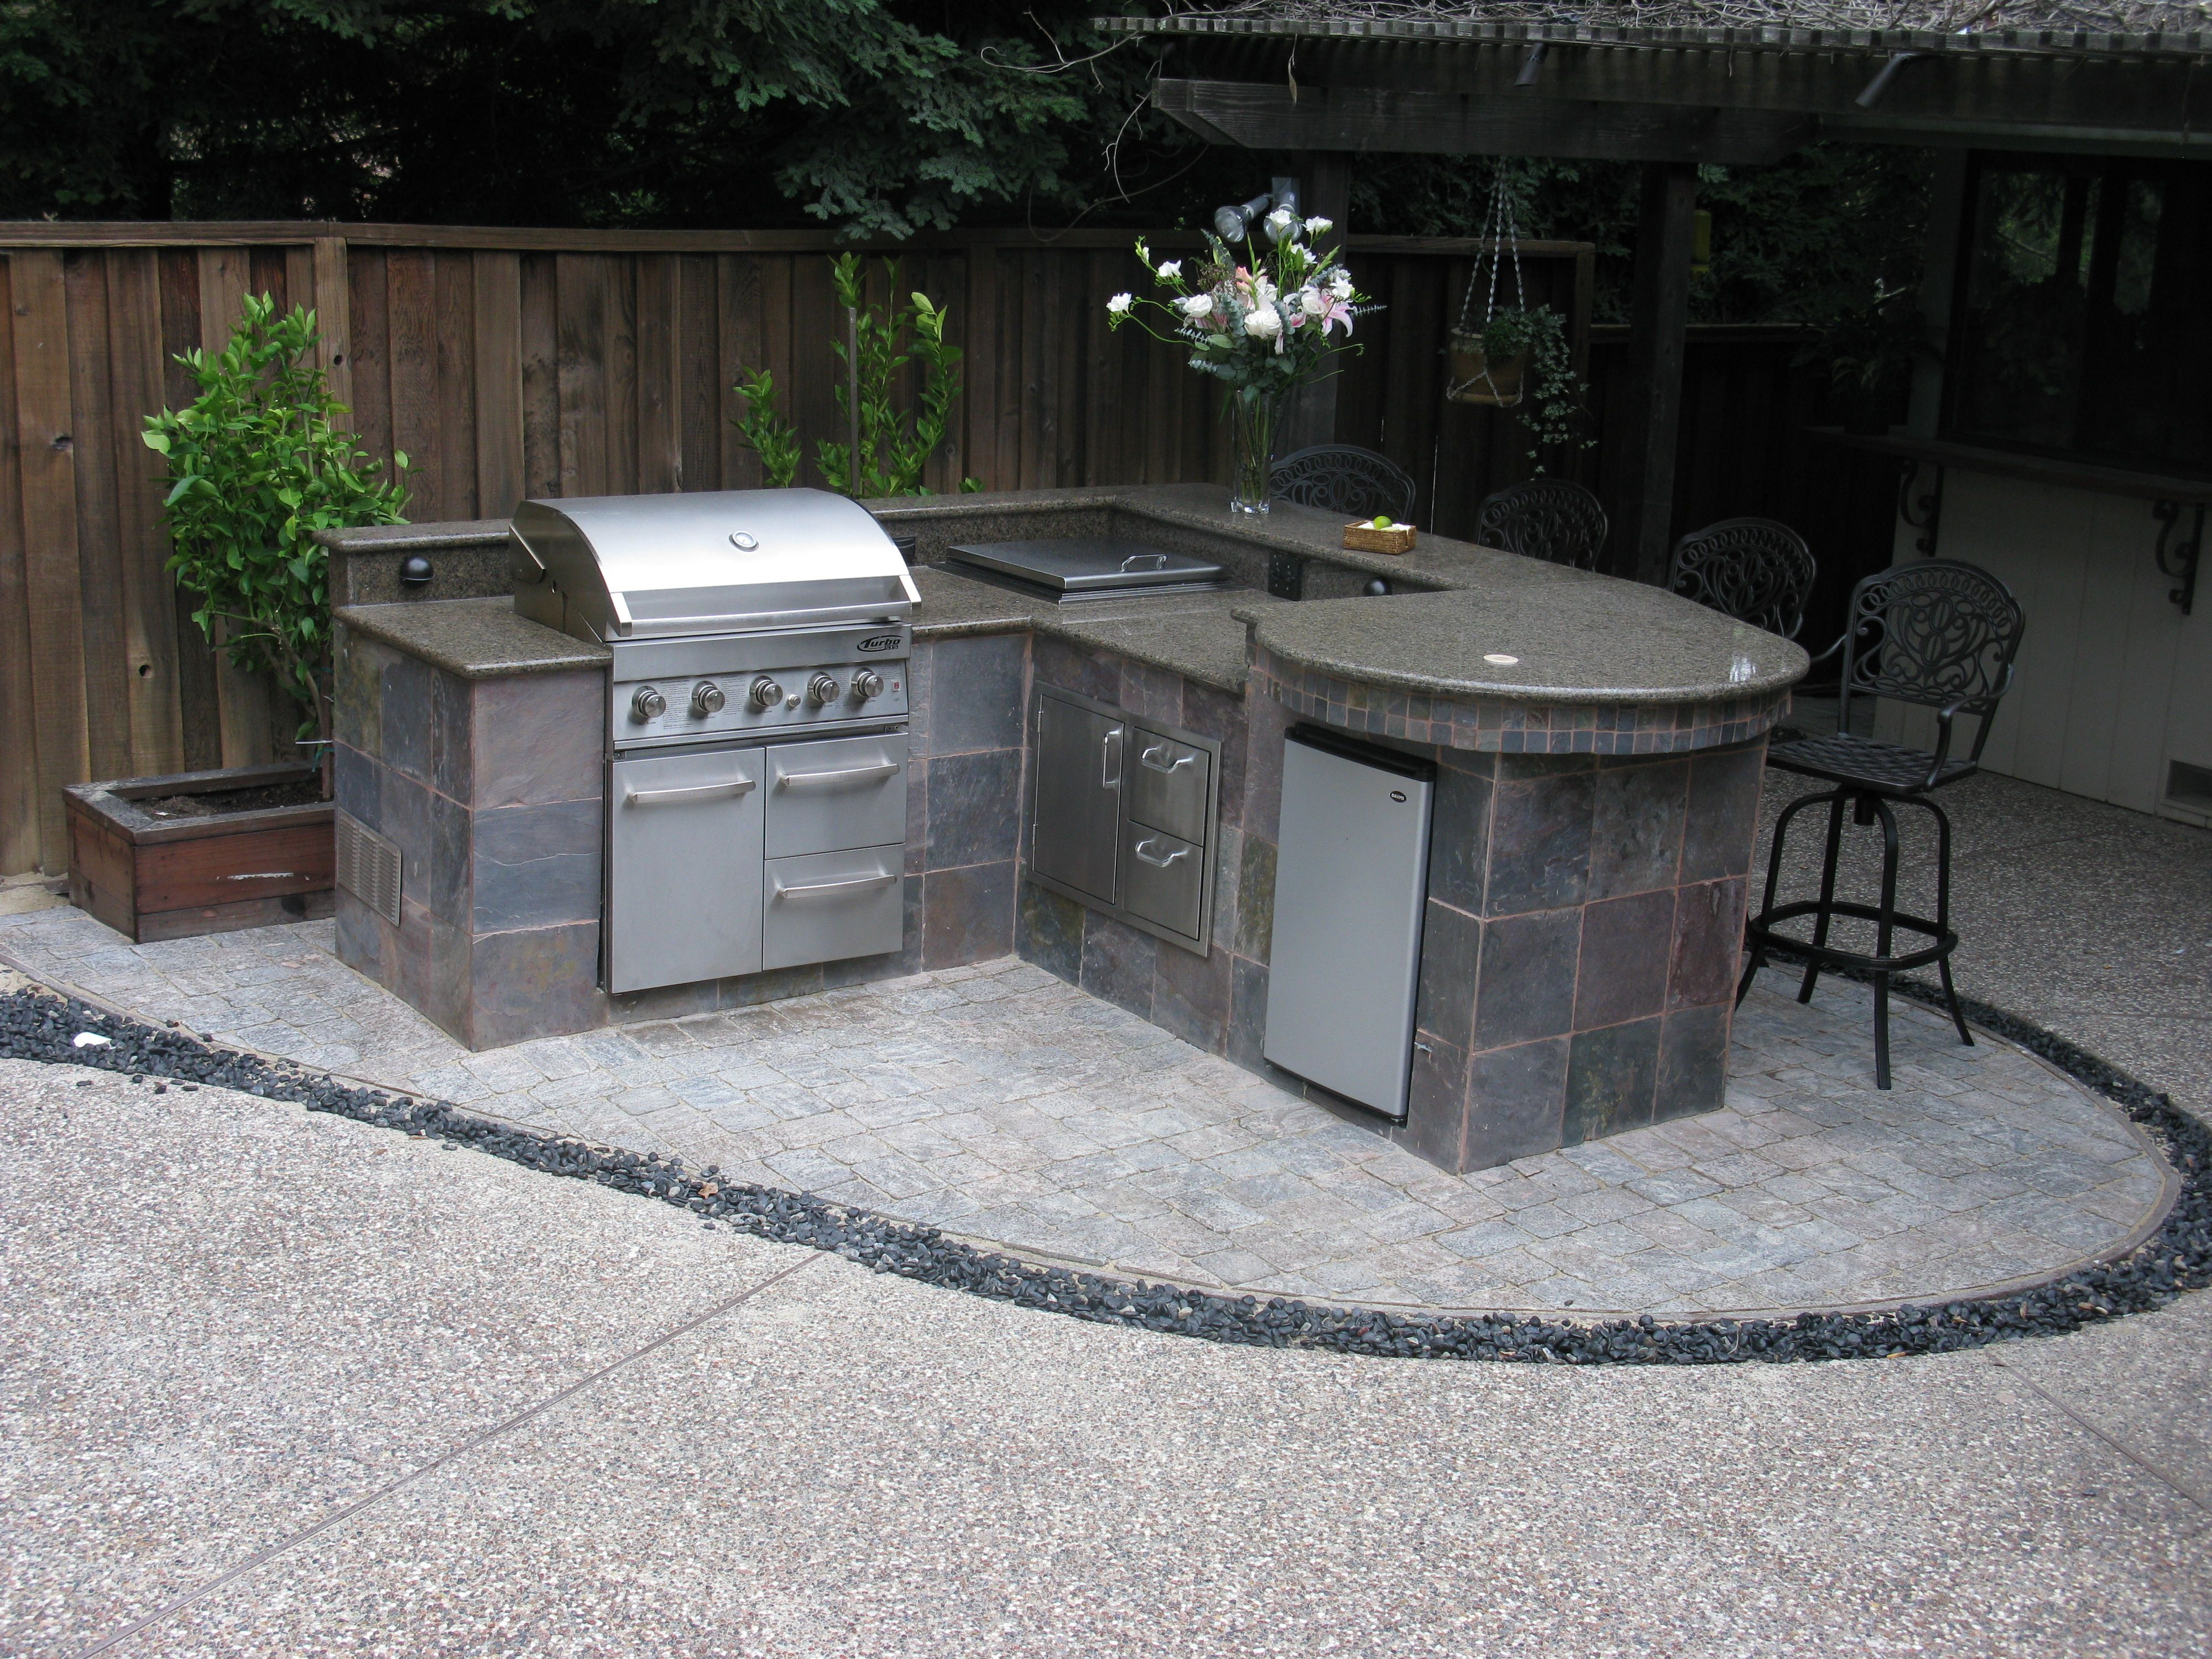 Tim Rush Used The Bbq Coach 48 Rounded Table Module For A Beautiful Granite Bar Height Serving Table Outdoor Kitchen Diy Bbq Serving Table